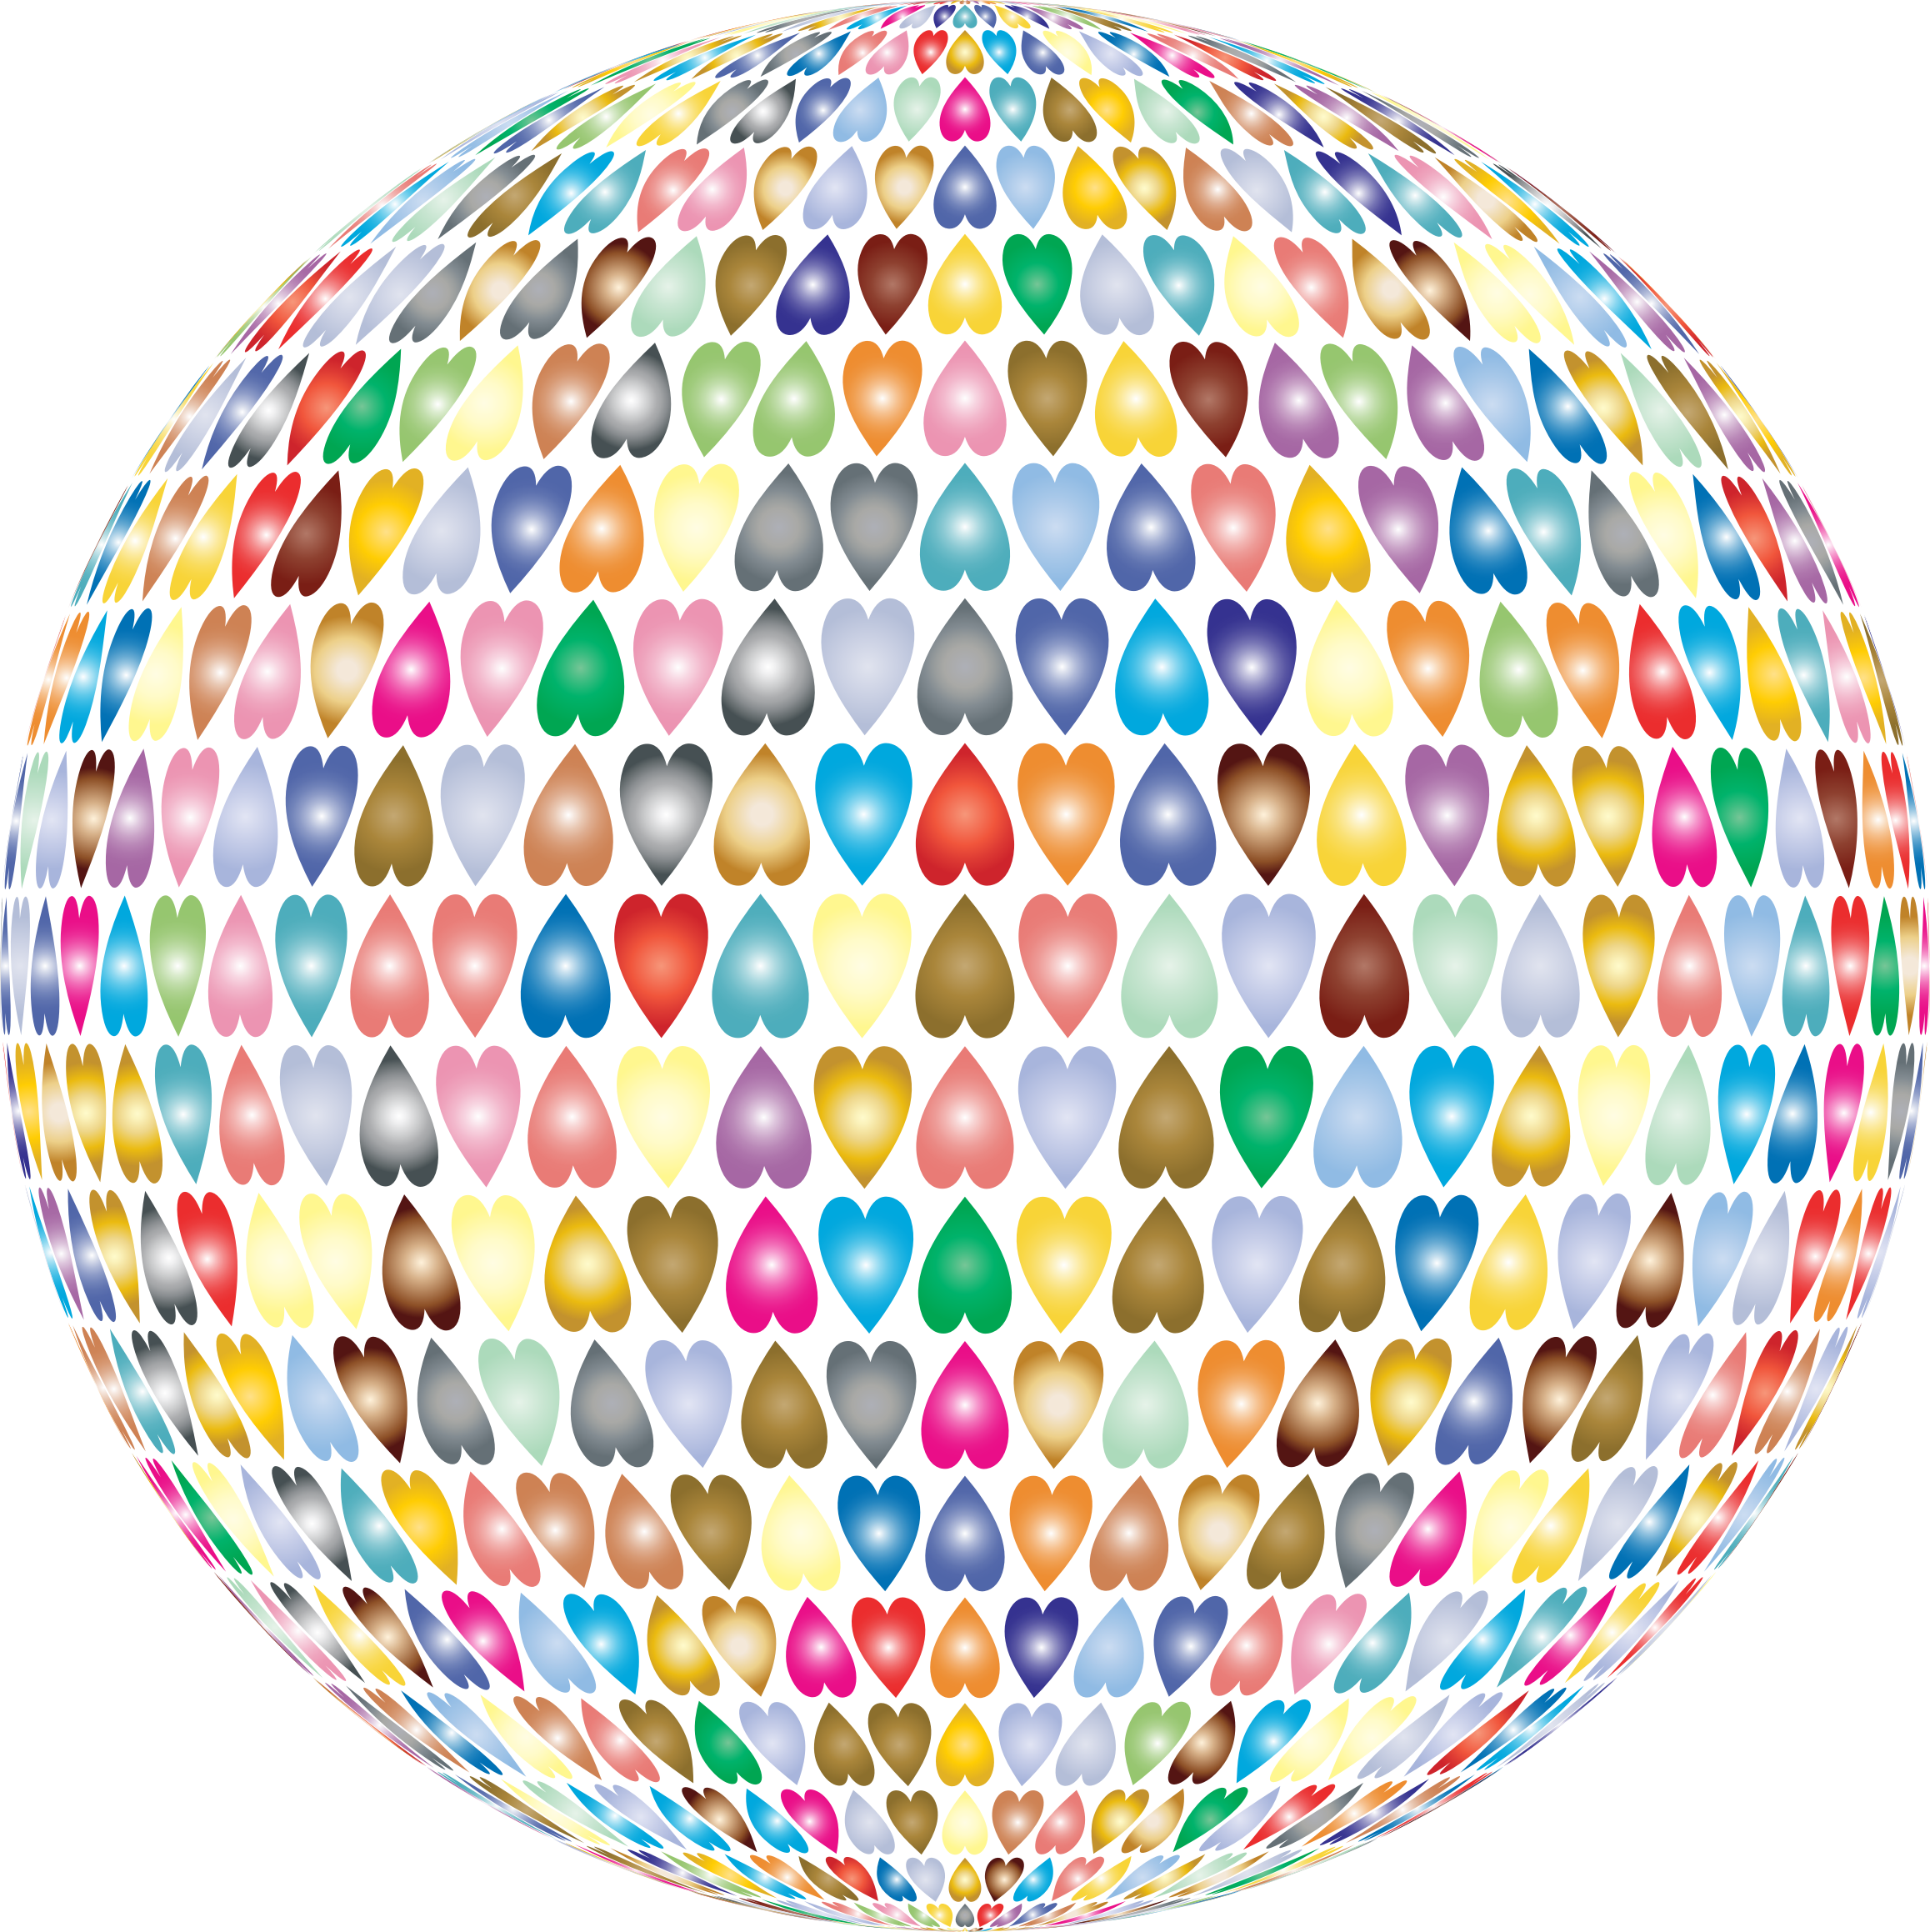 Prismatic Alternating Hearts Sphere 2 No Background by GDJ